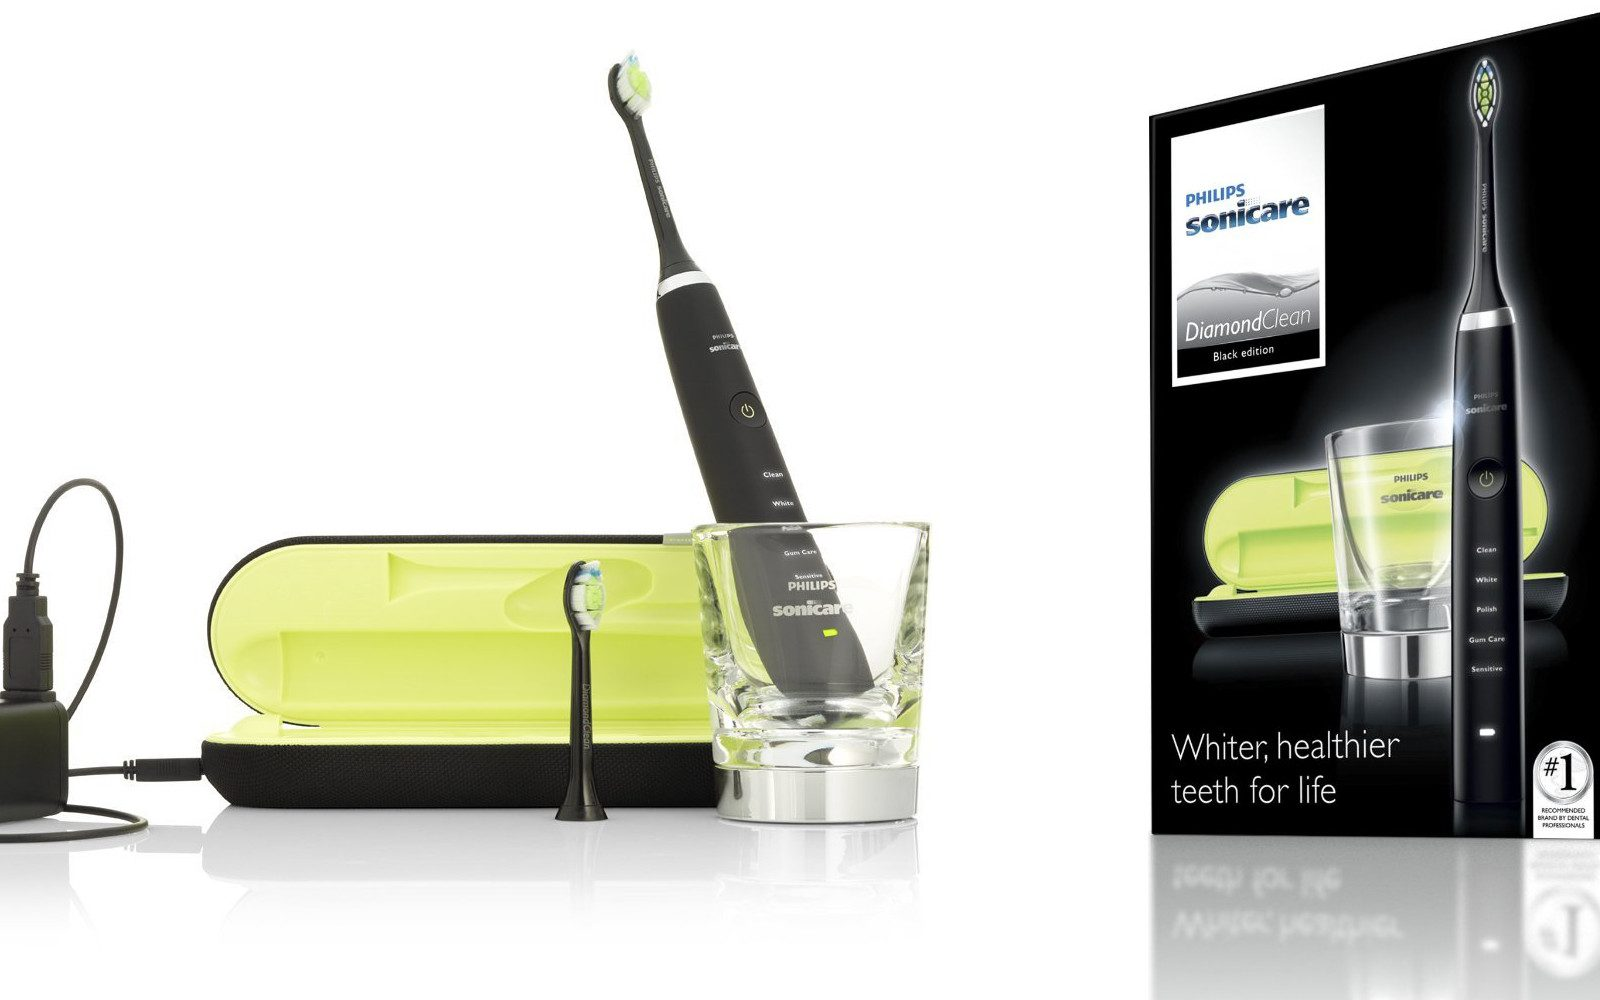 Home: Philips Electric Toothbrush w/ glass charger $170 (Reg